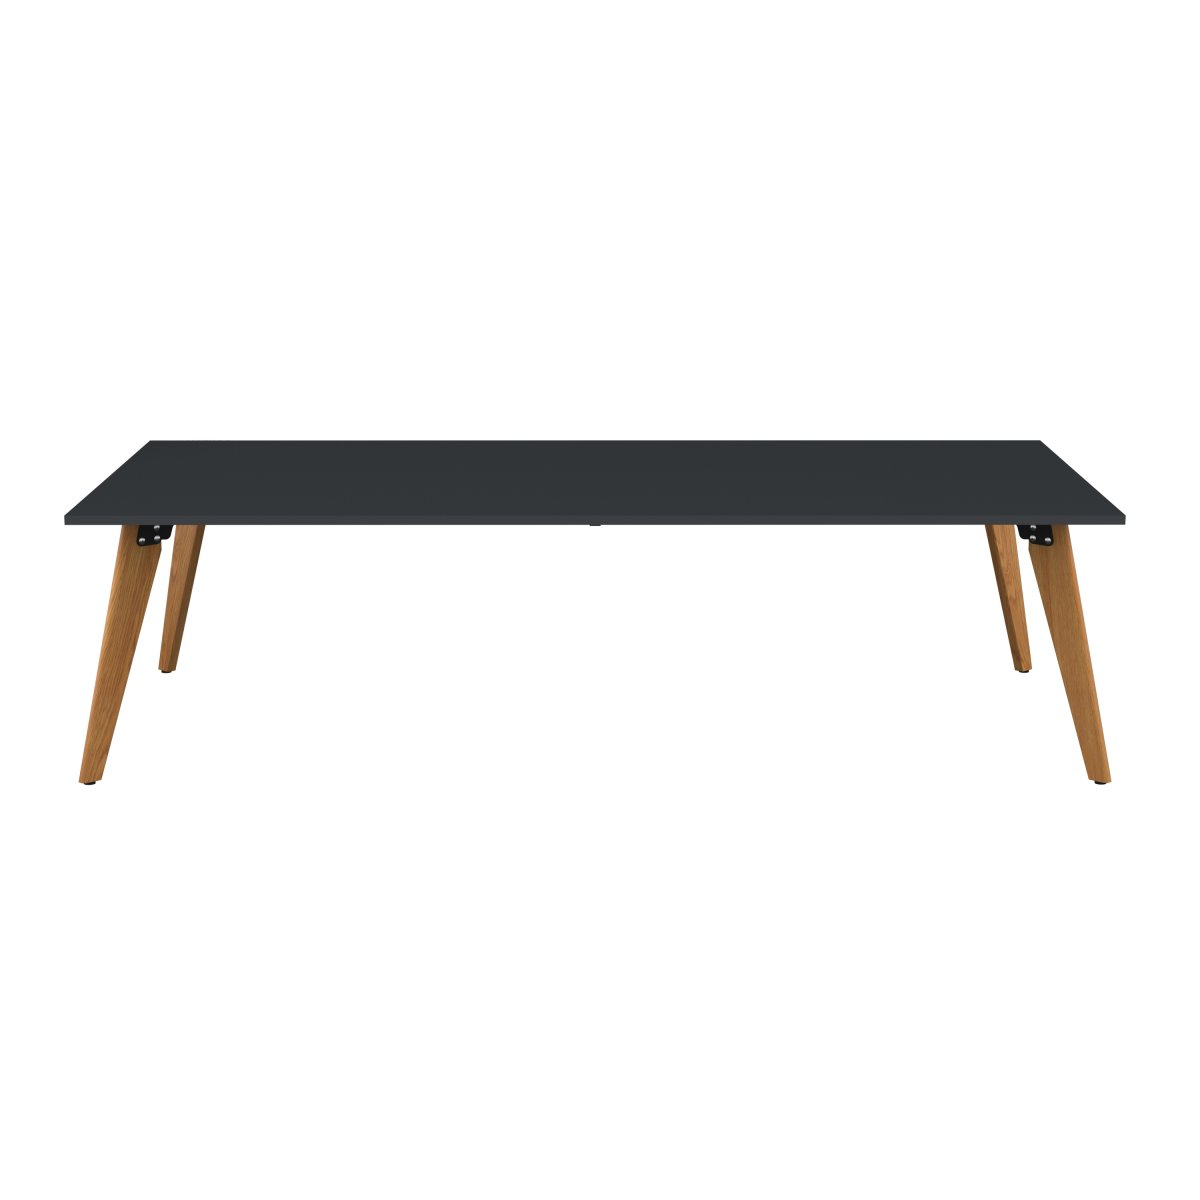 Plateau Square Table Anthracite 2800 X 1400 X 740H